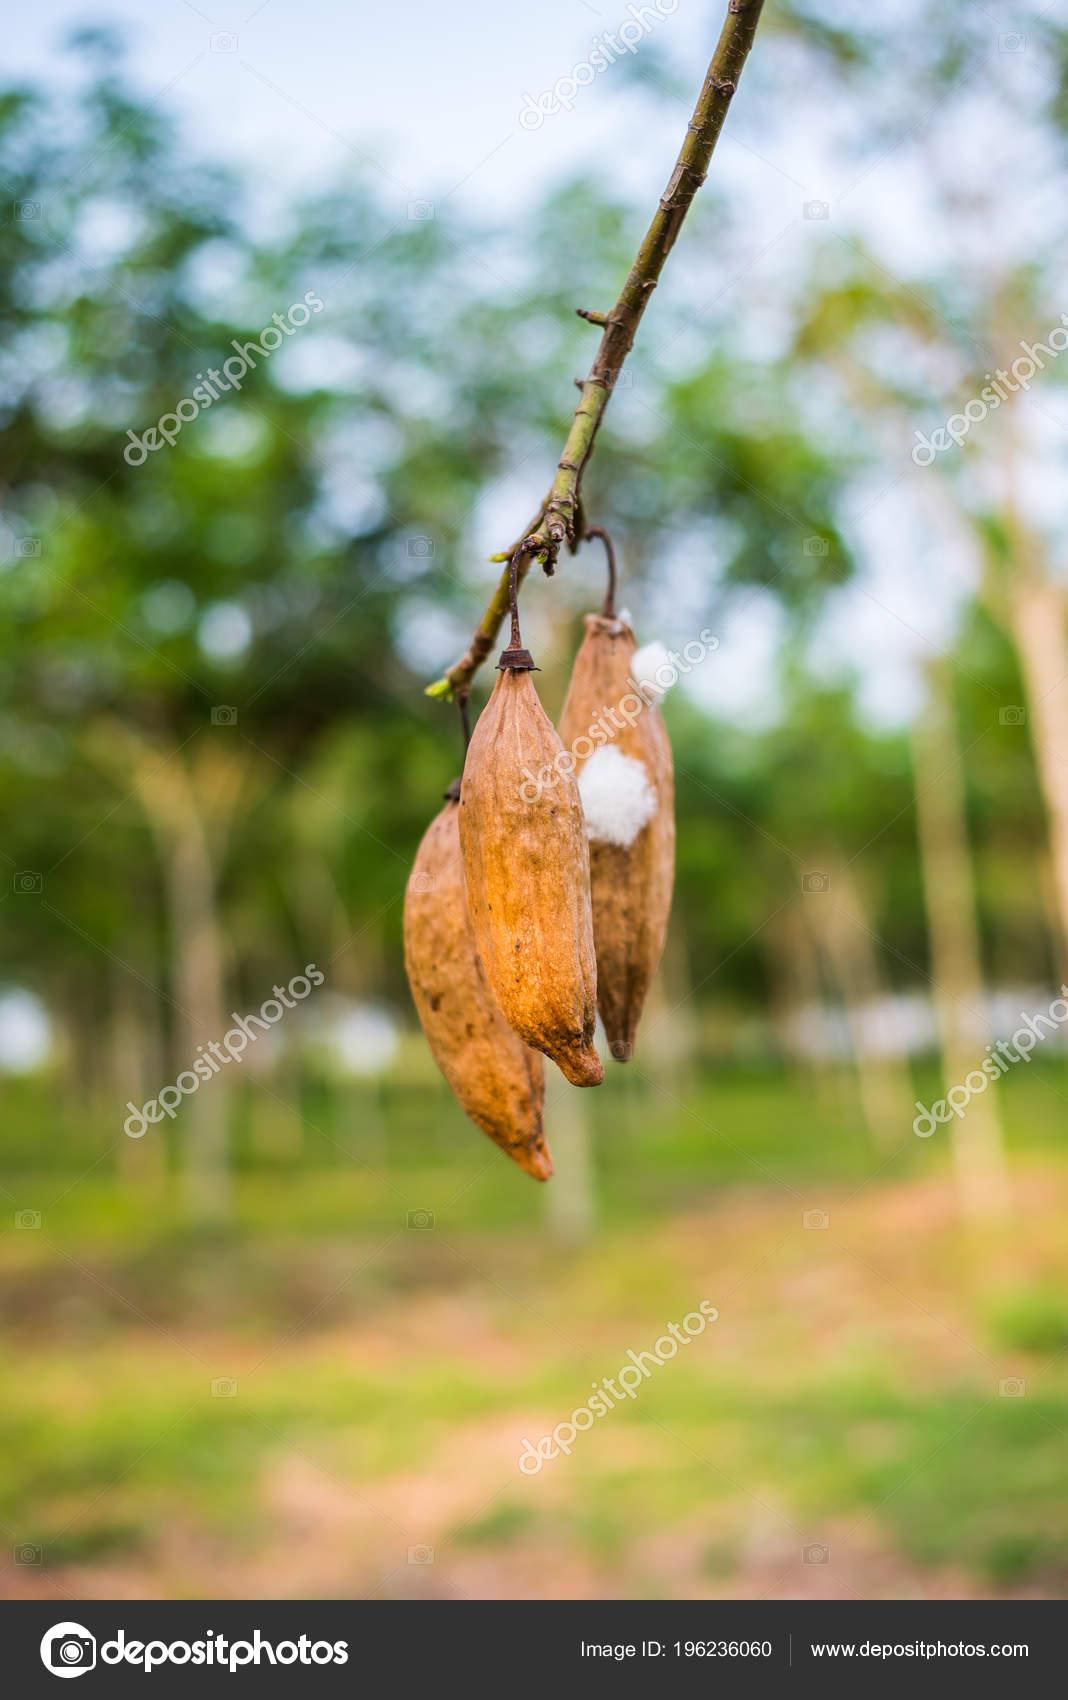 Kapok Tree Nature — Stock Photo © petchara-jan_@hotmail com #196236060